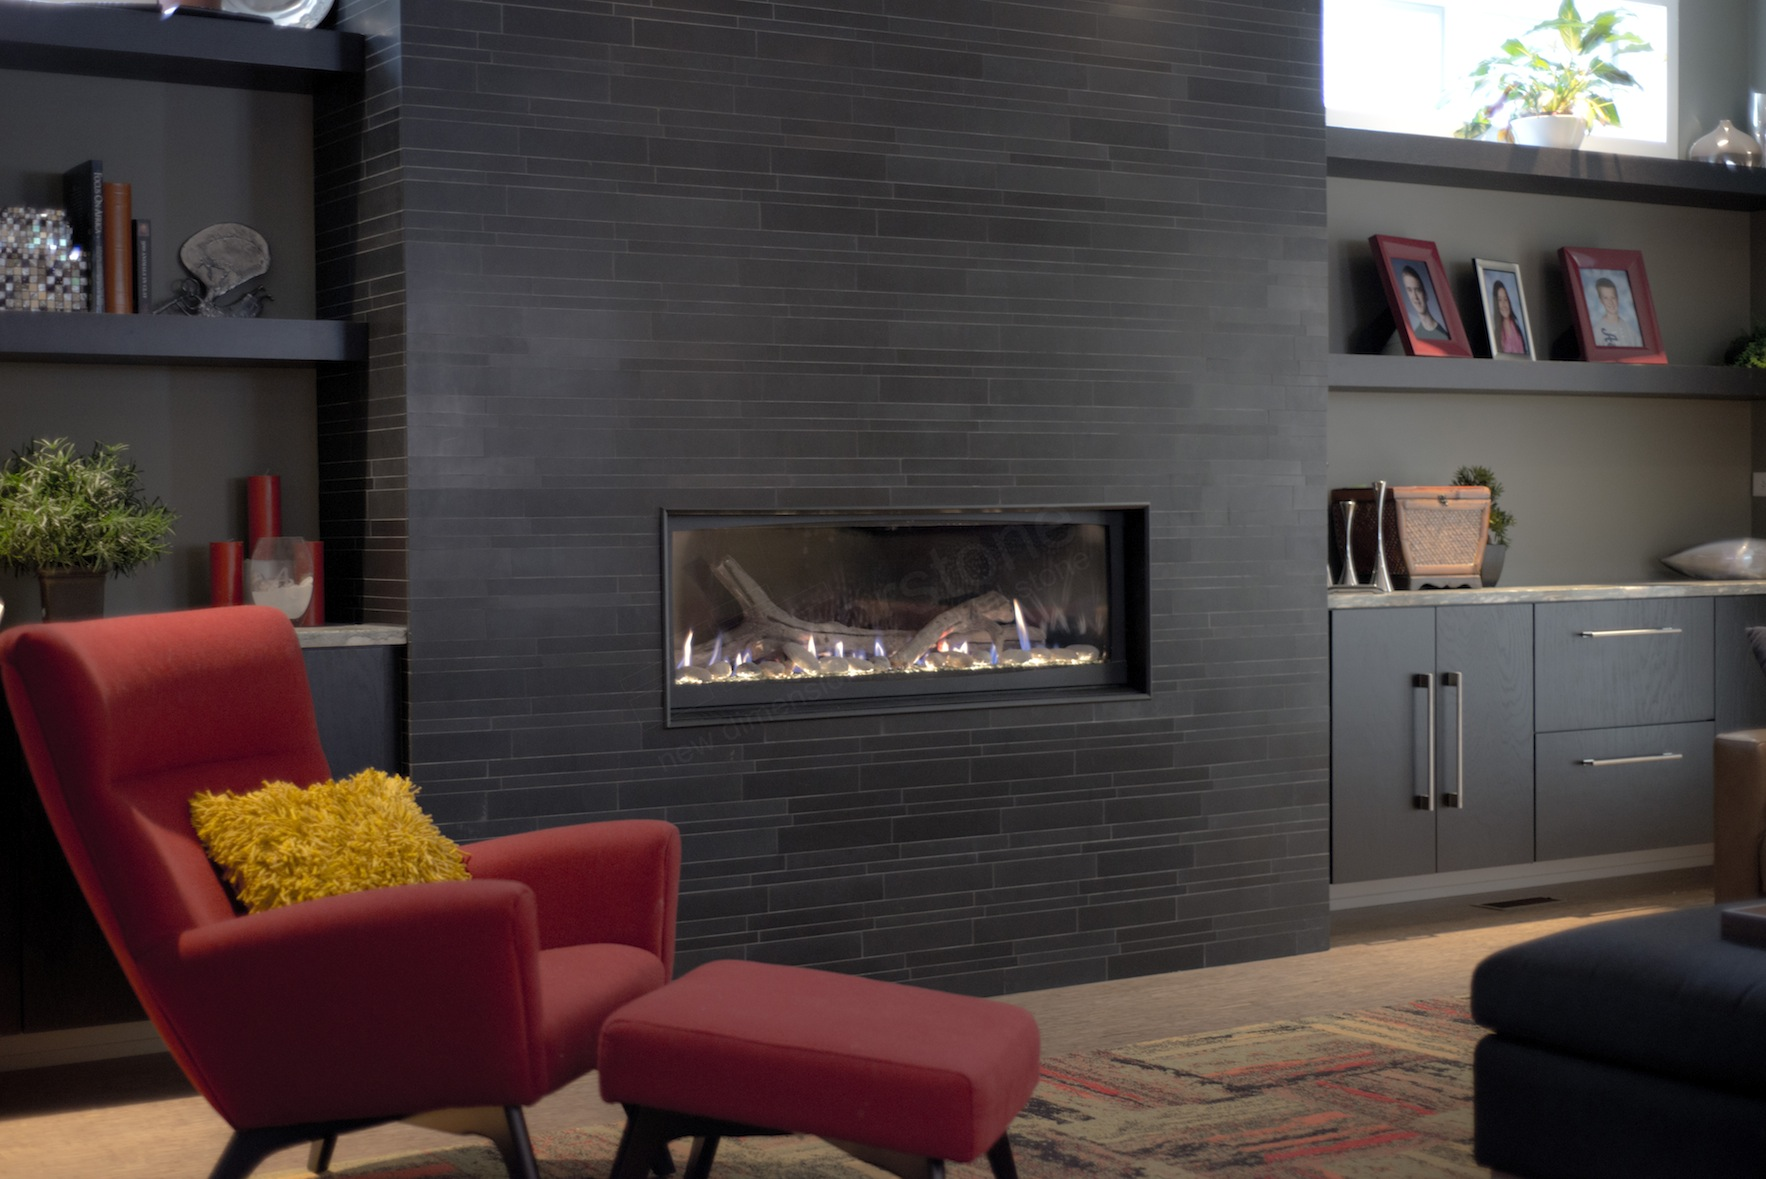 Modern Designed Living Room with Large Black Stone Tile Fireplace